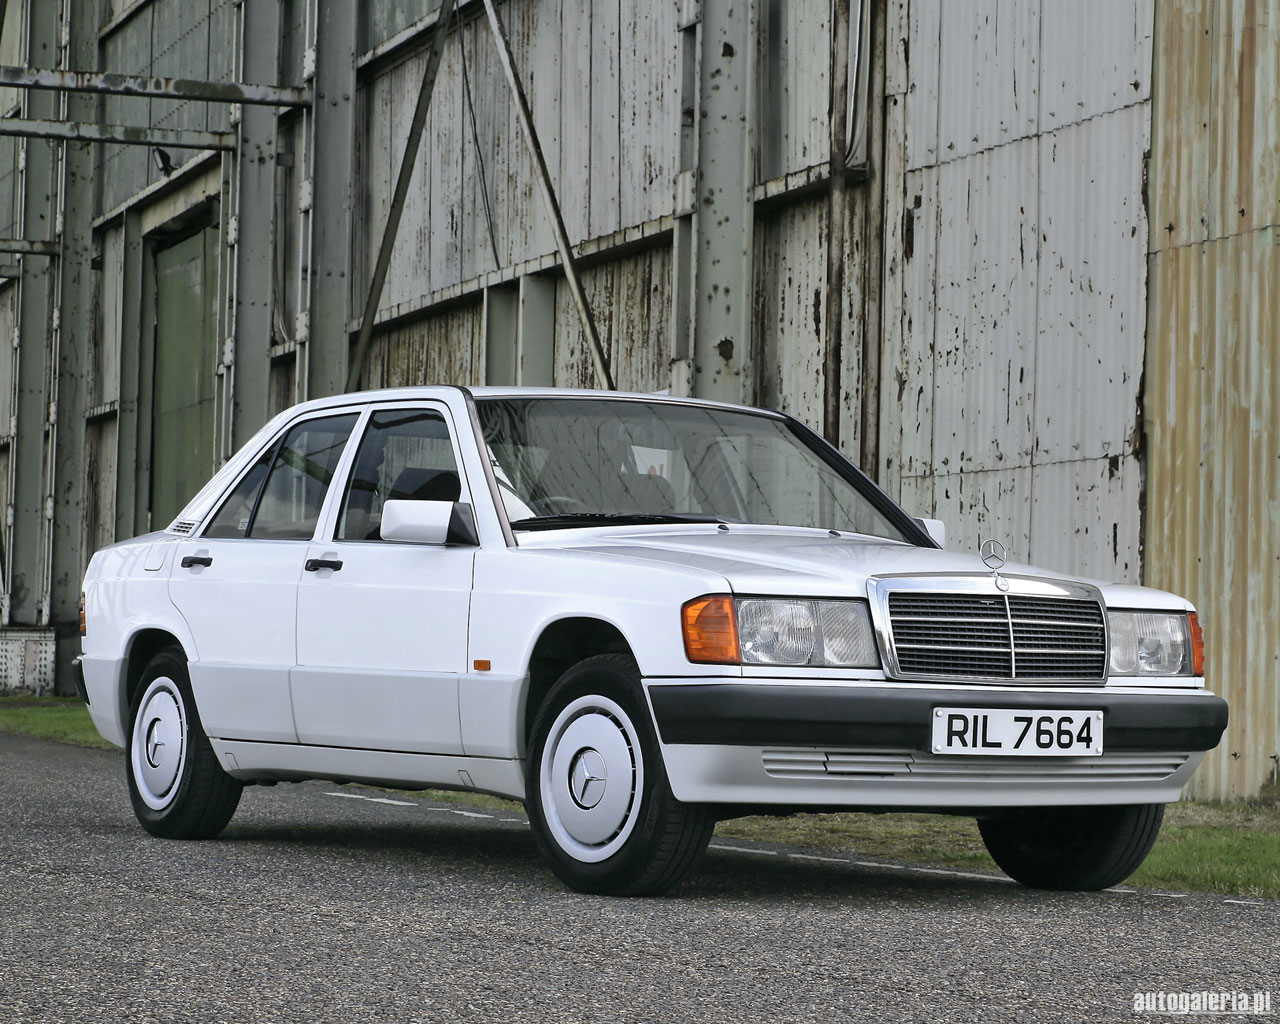 Suche nach mercedes benz 190 deine for Search for mercedes benz